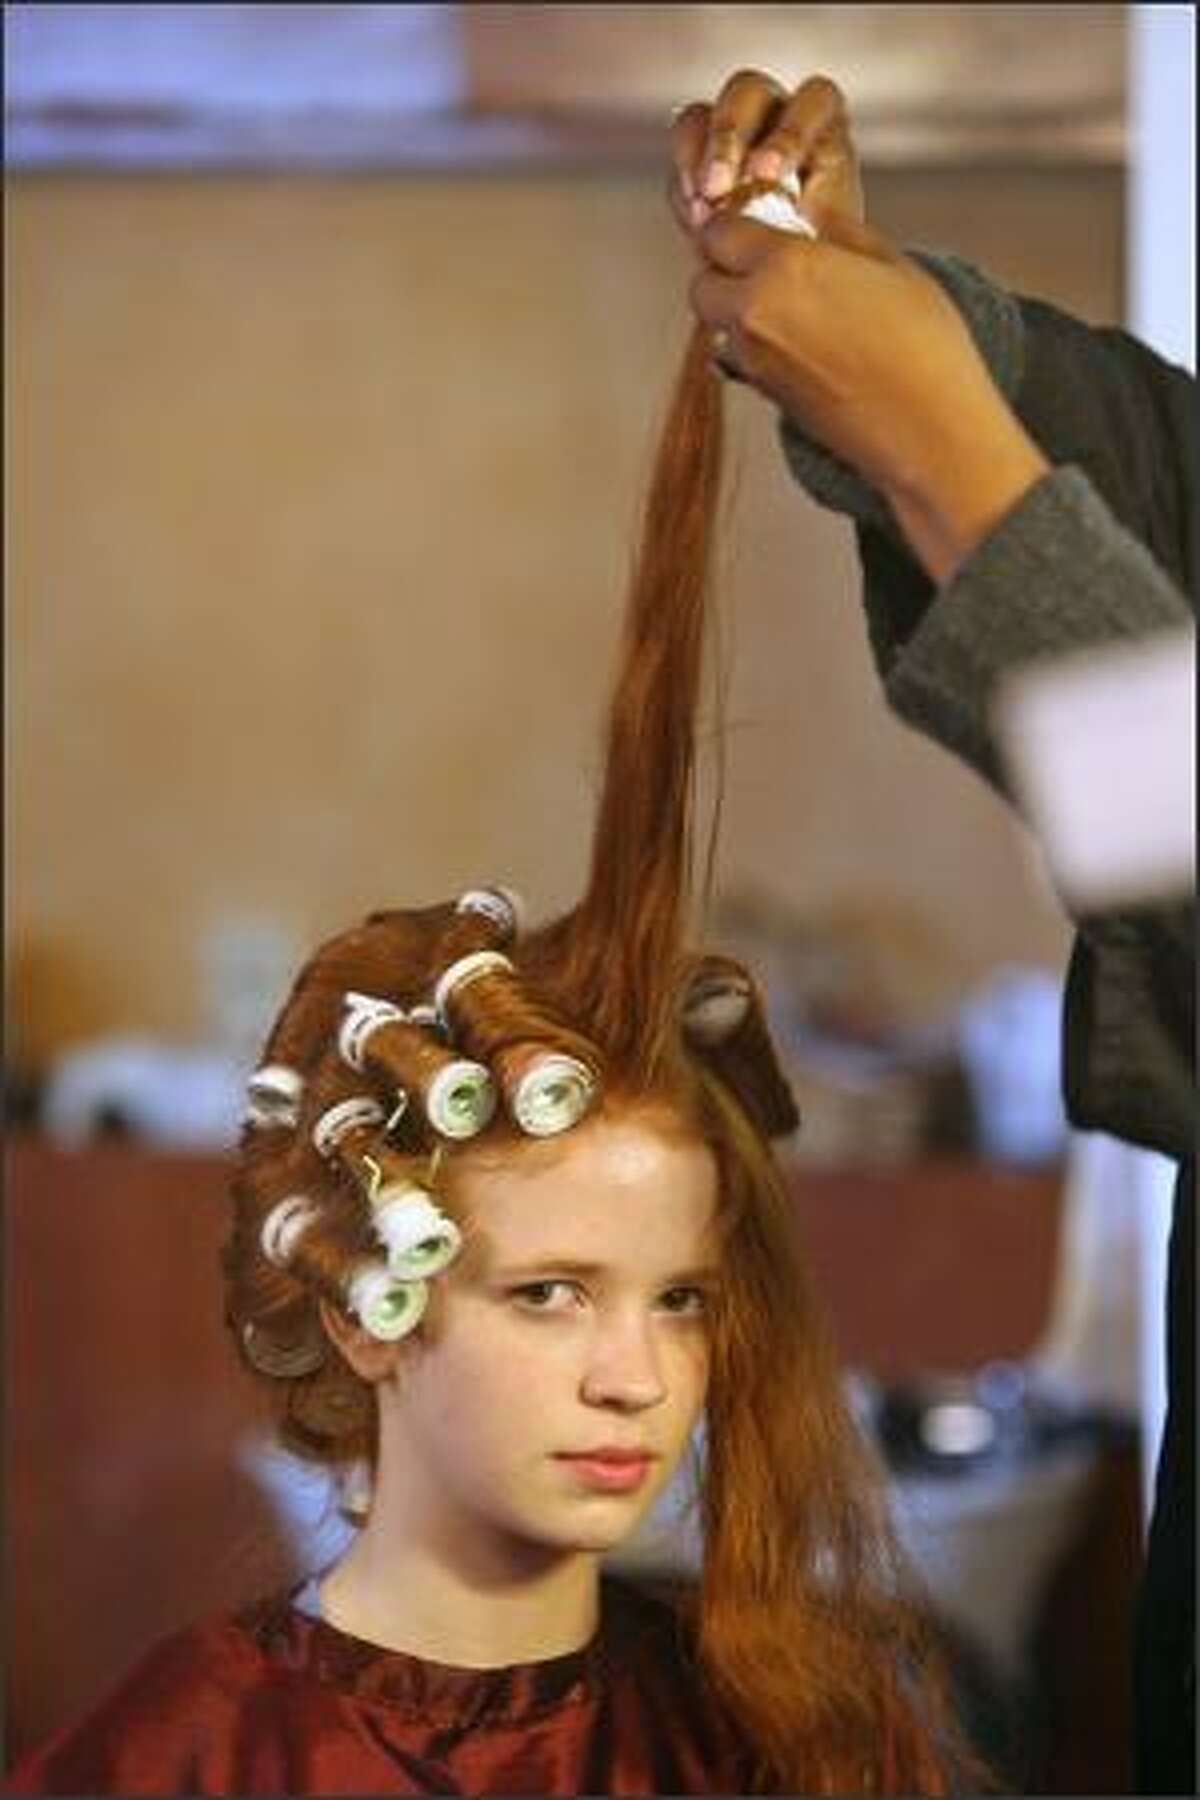 Stylist Kay Matthews gives Claire Nelson's hair a workout before a shoot.